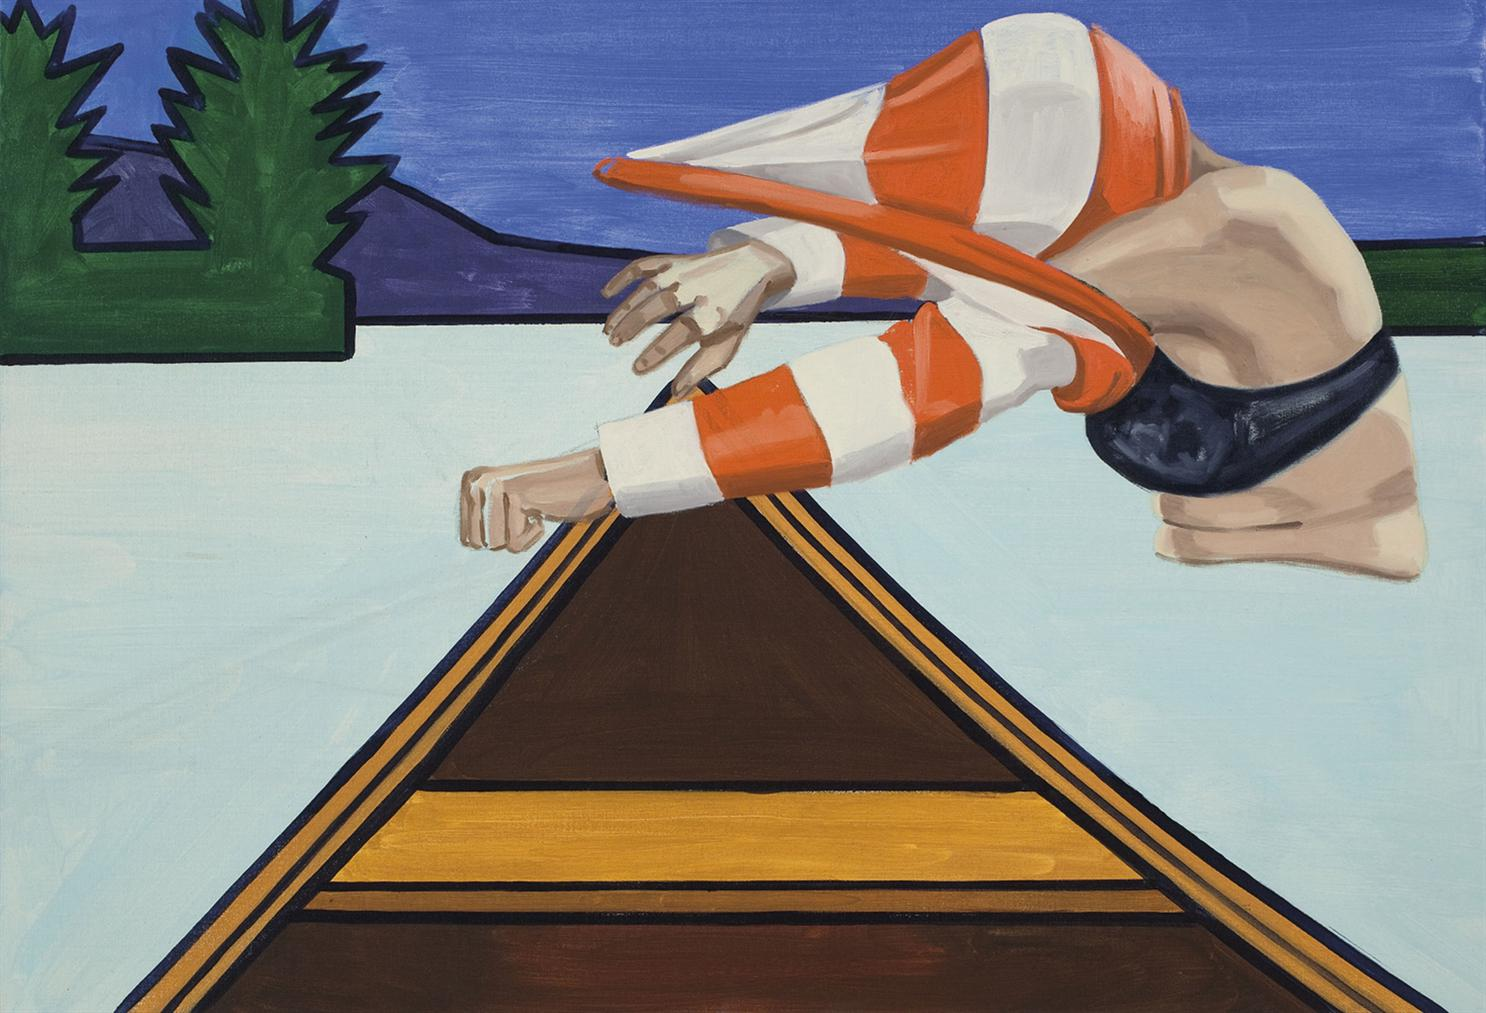 David Salle-Pull-Over-2010